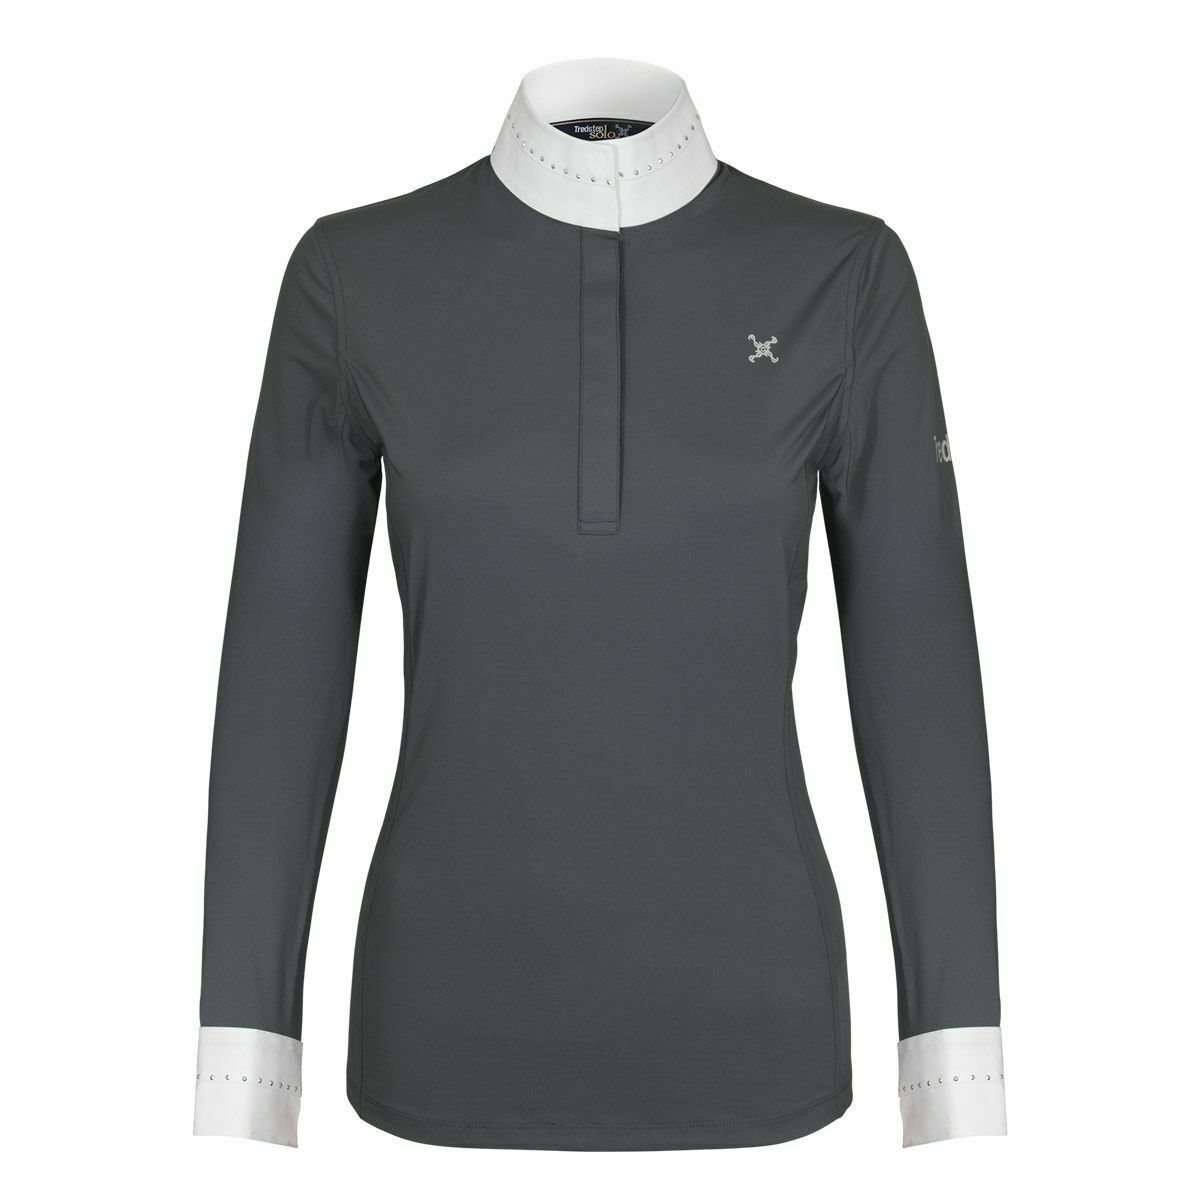 Trotstep Solo Eclipse Long Sleeve Show Shirt in AirSilk with Crystal Details